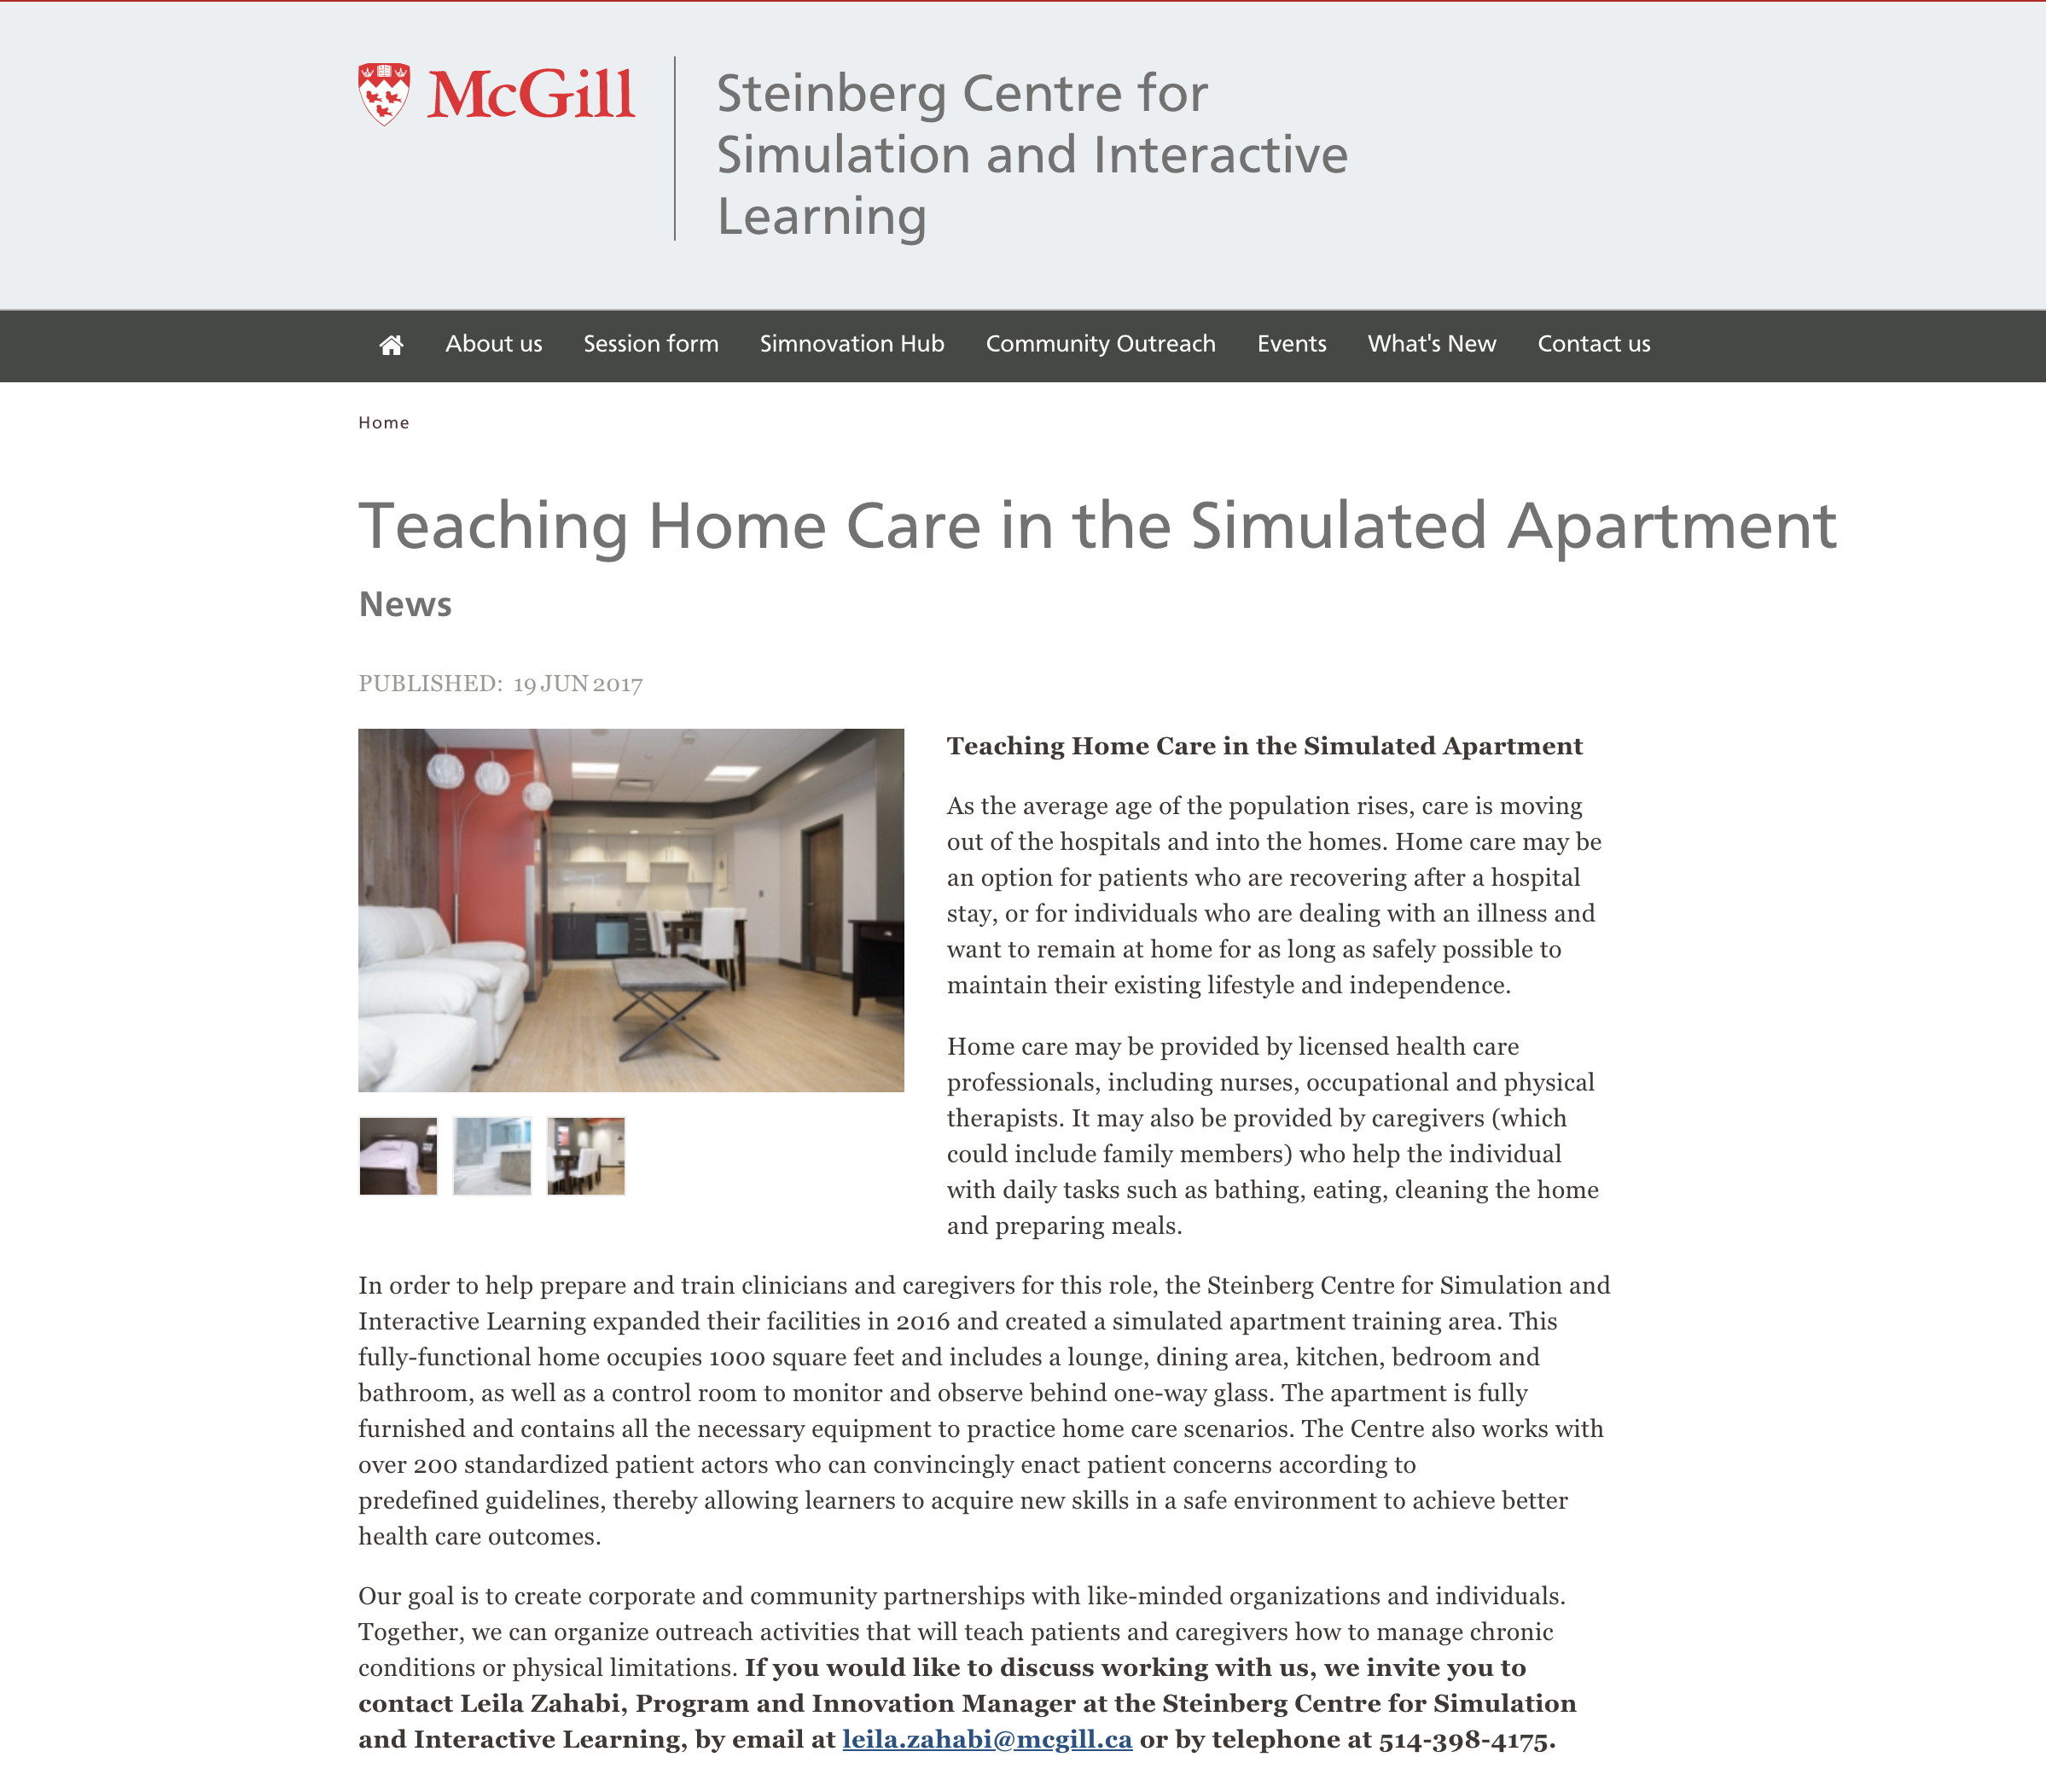 McGill - Steinberg Centre for Simulation and Interactive Learning - Juin 2017